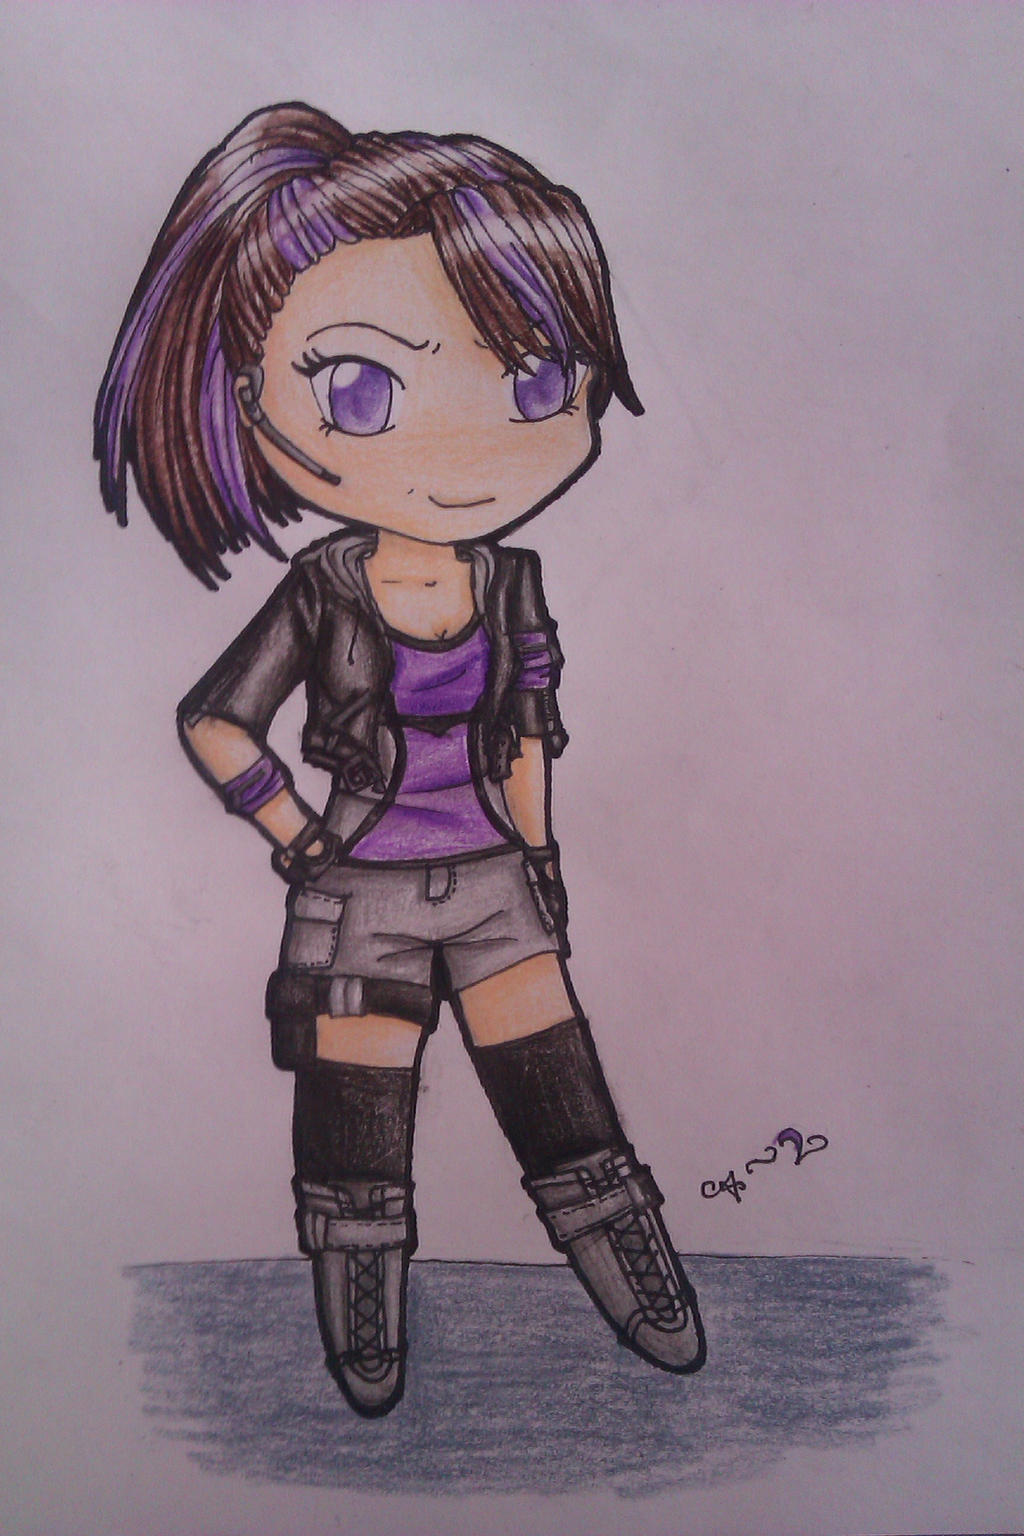 Chibi spy girl by daisukifashion on DeviantArt